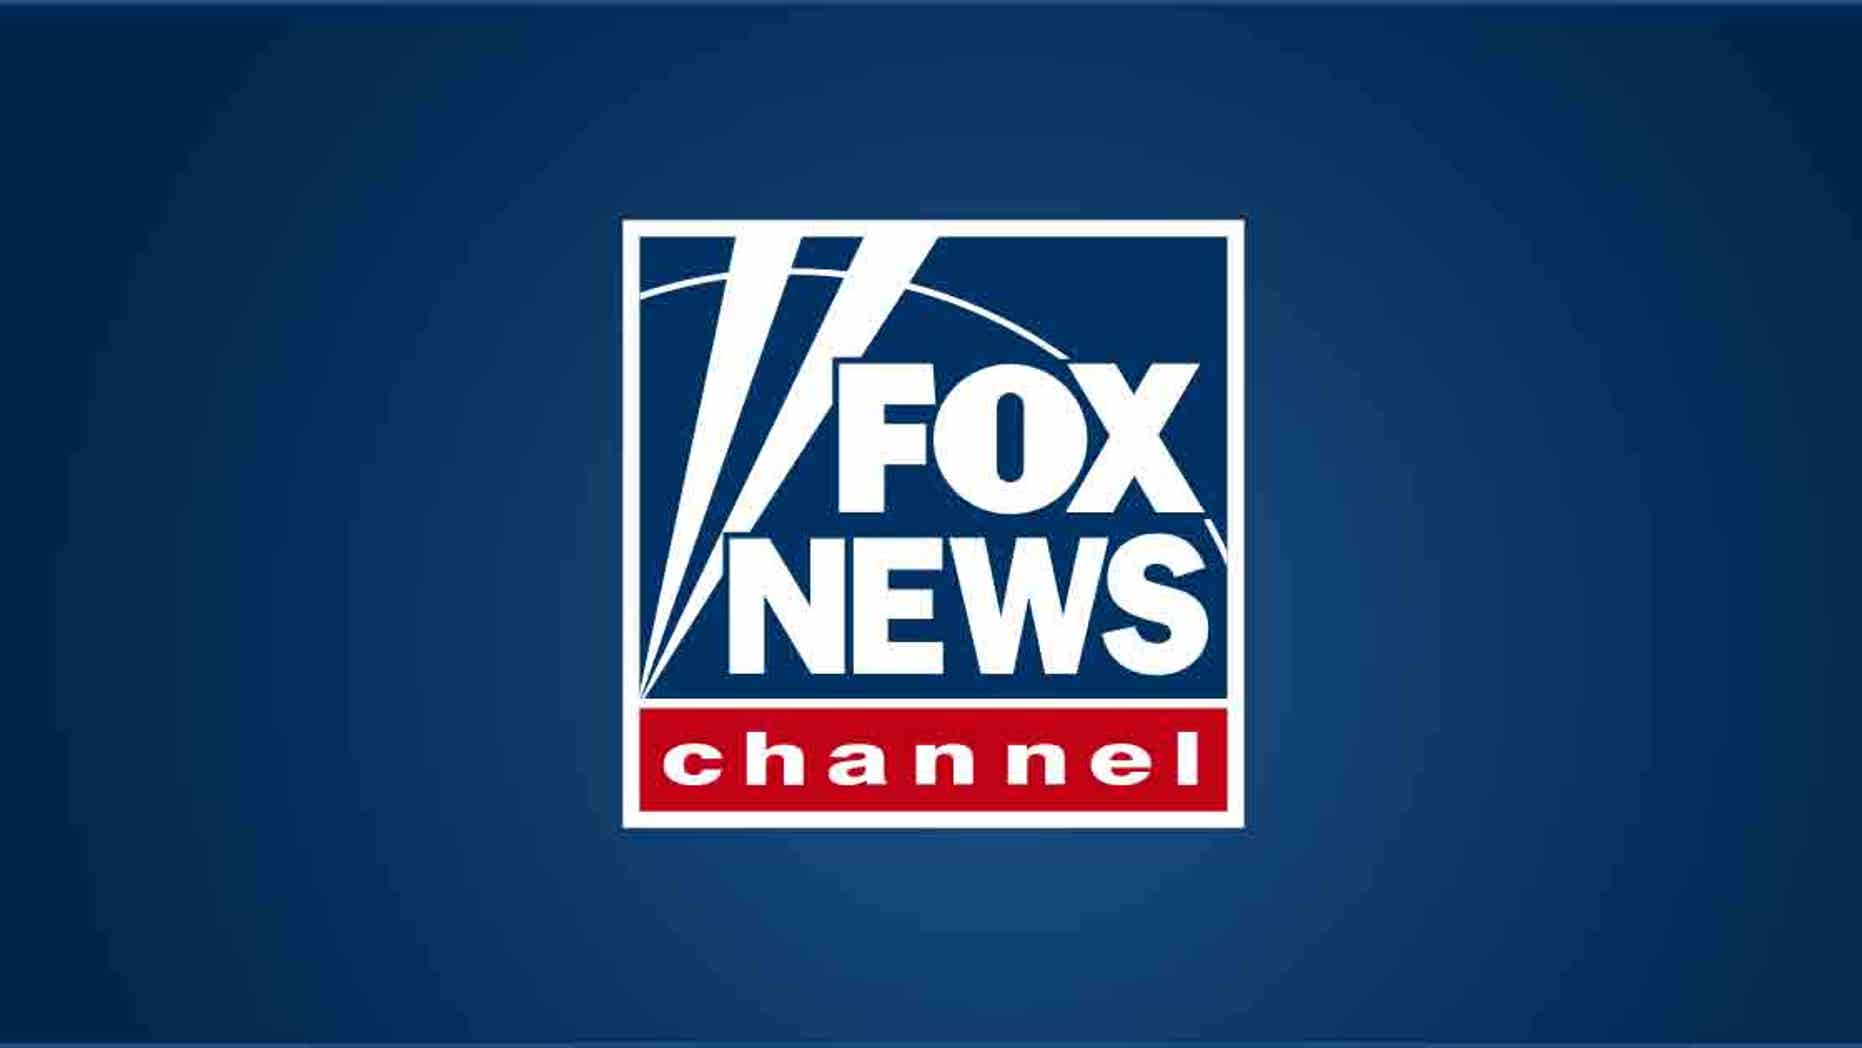 Westlake Legal Group fox-news-channel-logo Today on Fox News, July 15, 2019 fox-news/entertainment/media fox-news/entertainment fox news fnc/entertainment fnc article 23726622-ddbe-59dc-8817-d2074d09fd5c